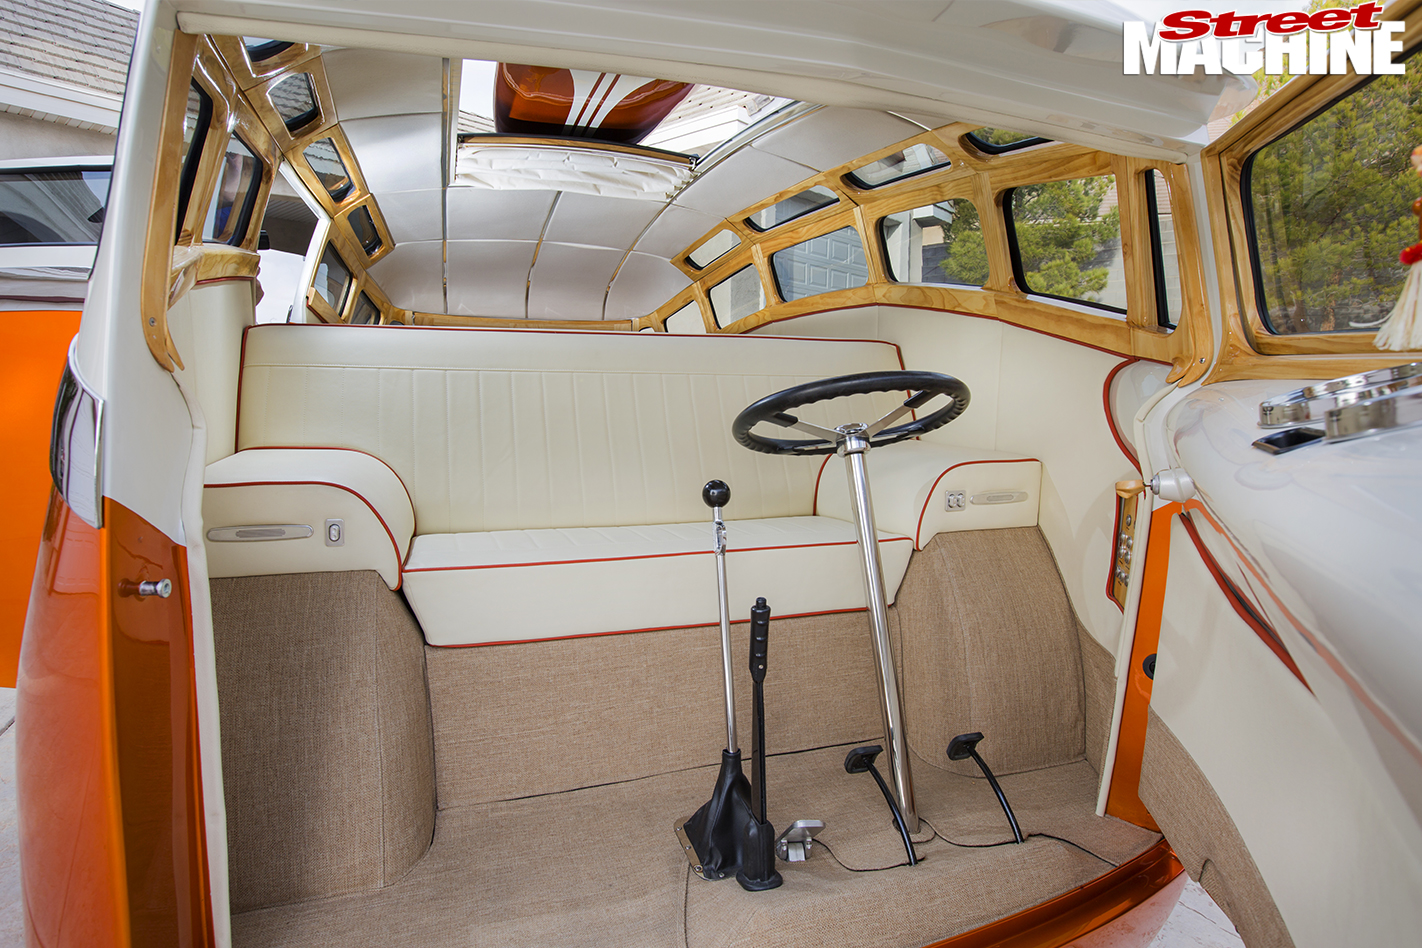 VW-Kombi -interior